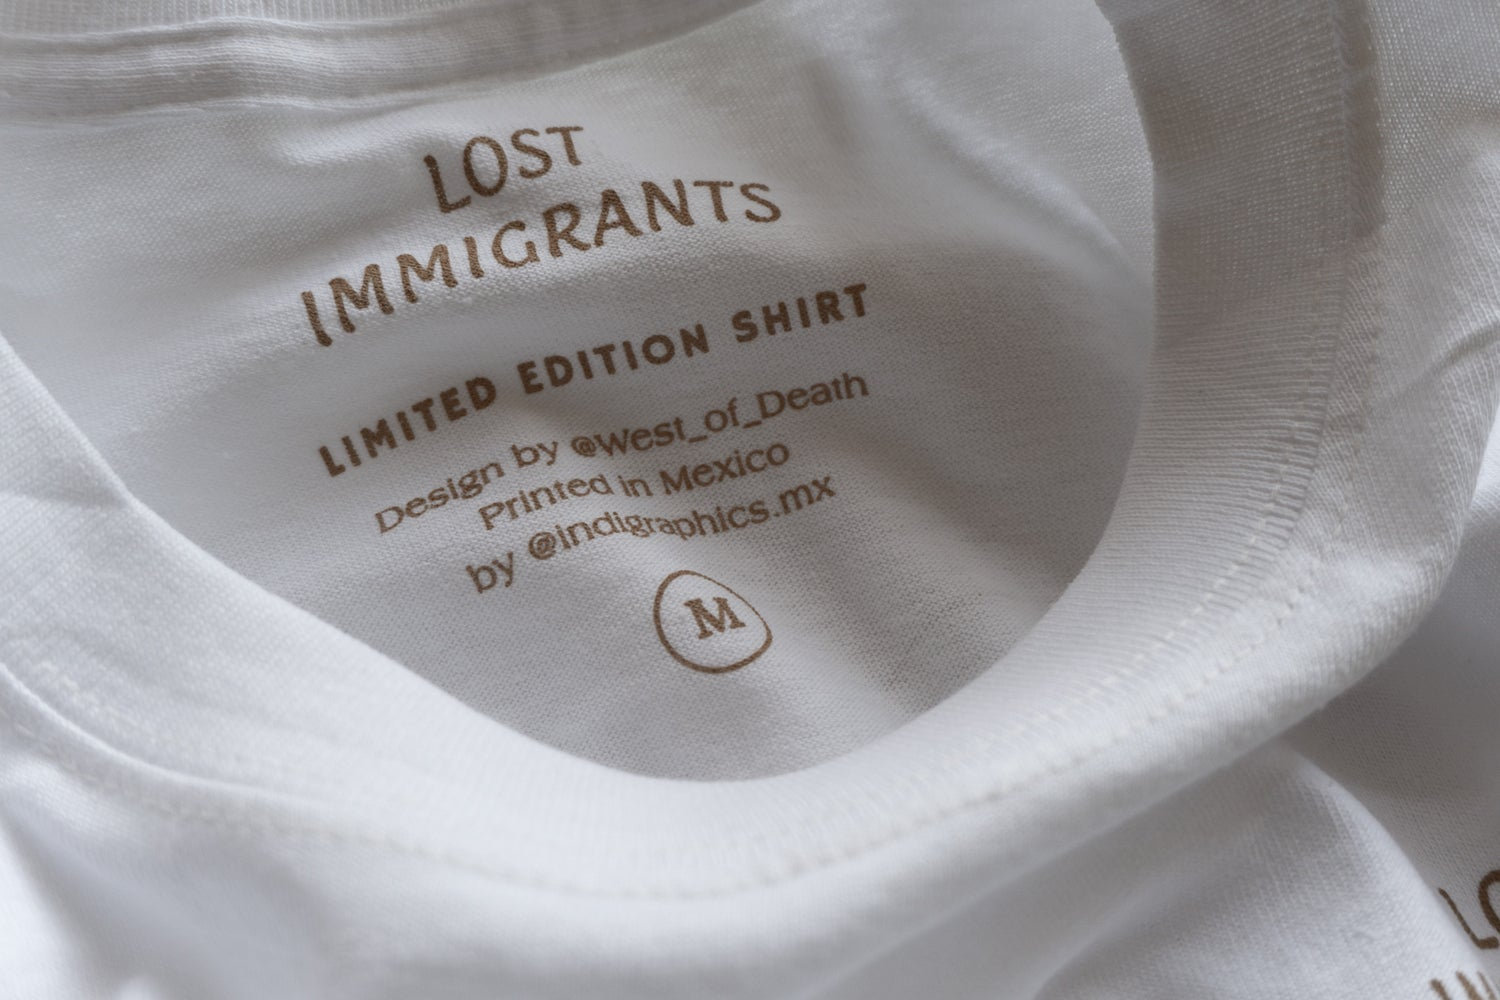 Image of White Lost Immigrants x West of Death Tee